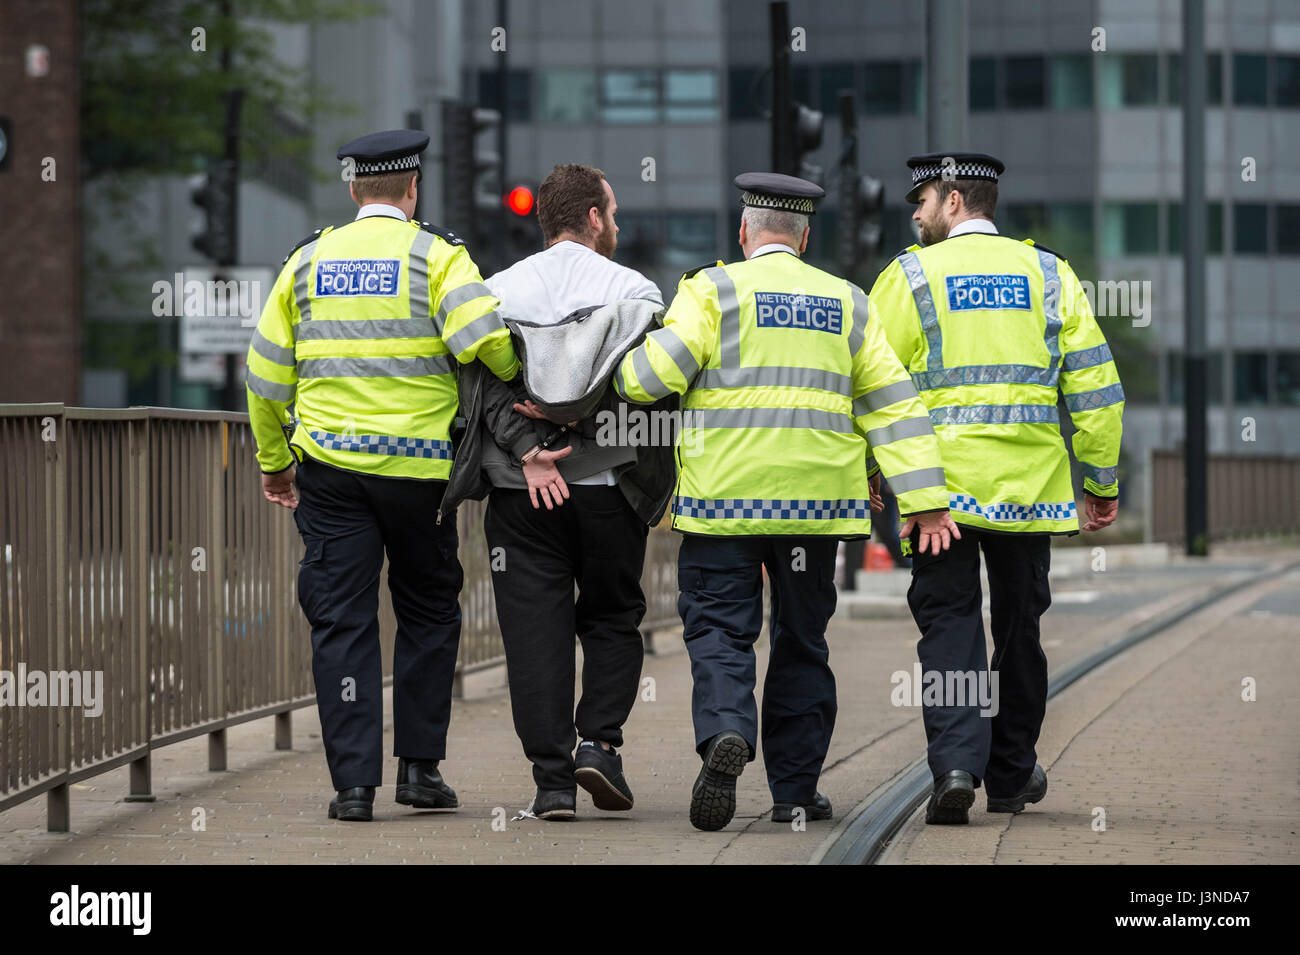 London, UK. 6th May, 2017. Far-right movement South East Alliance anti-immigration protest outside Lunar House the Stock Photo